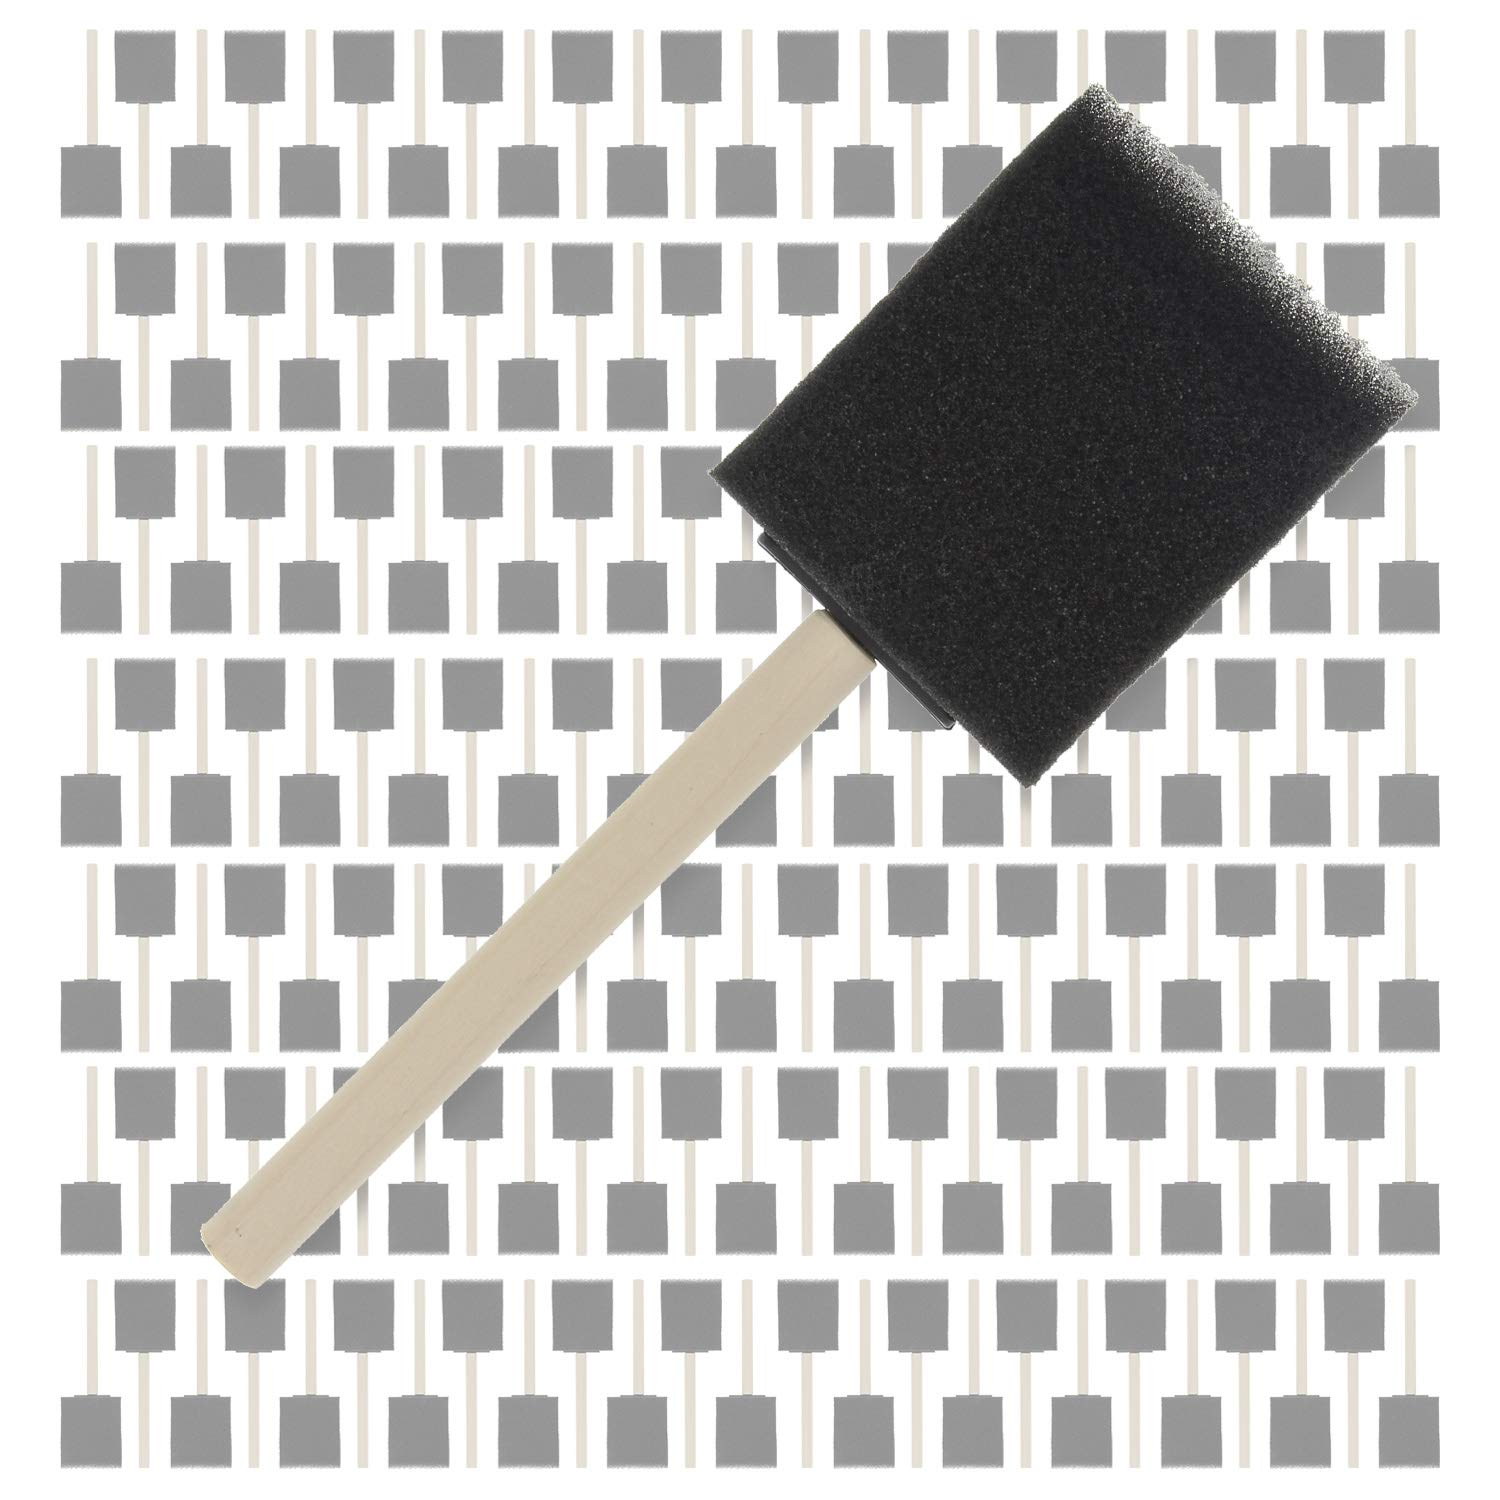 US Art Supply 2 inch Foam Sponge Wood Handle Paint Brush Set (Full Case of 480 Brushes) - Lightweight, Durable and Great for Acrylics, Stains, Varnishes, Crafts, Art by US Art Supply